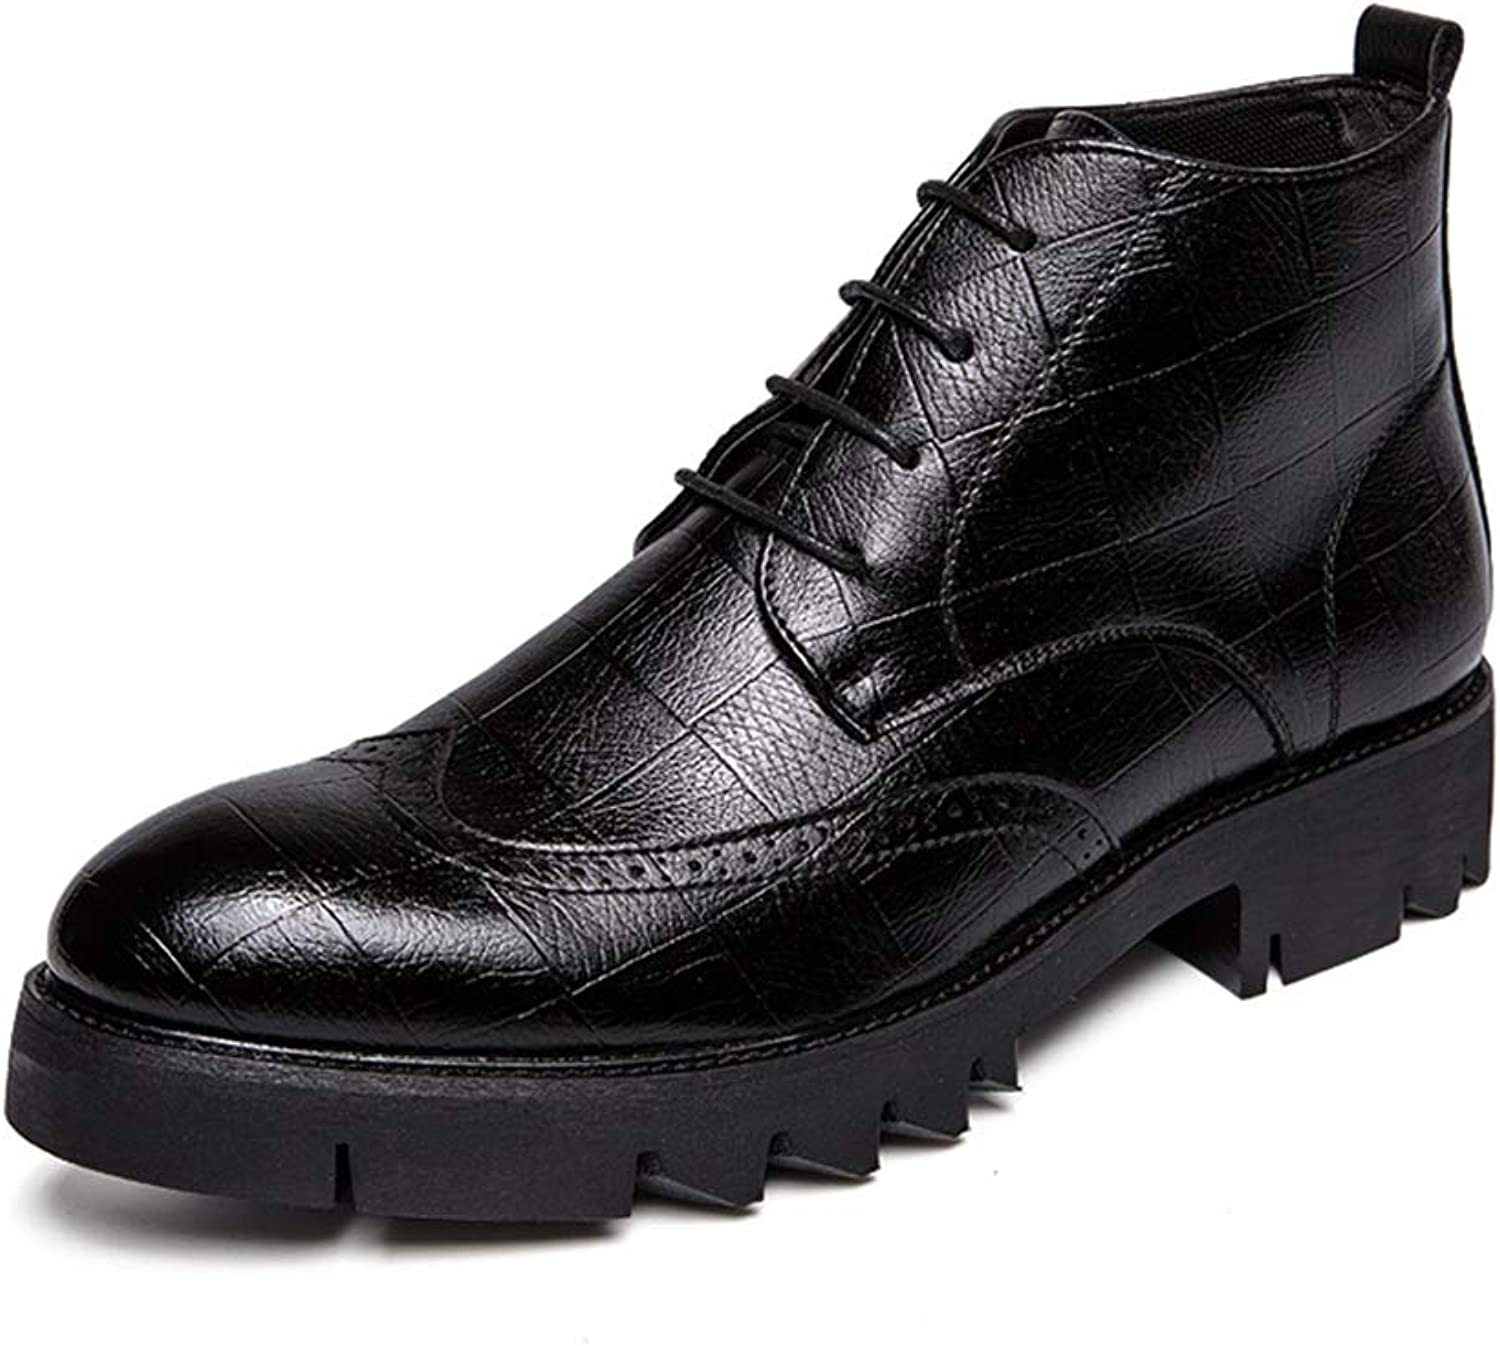 MUMUWU Men's Fashion Ankle Boots Casual Personality Checkered Texture Brogue Style High Top Semi Formal shoes (color   Black, Size   9.5 D(M) US)